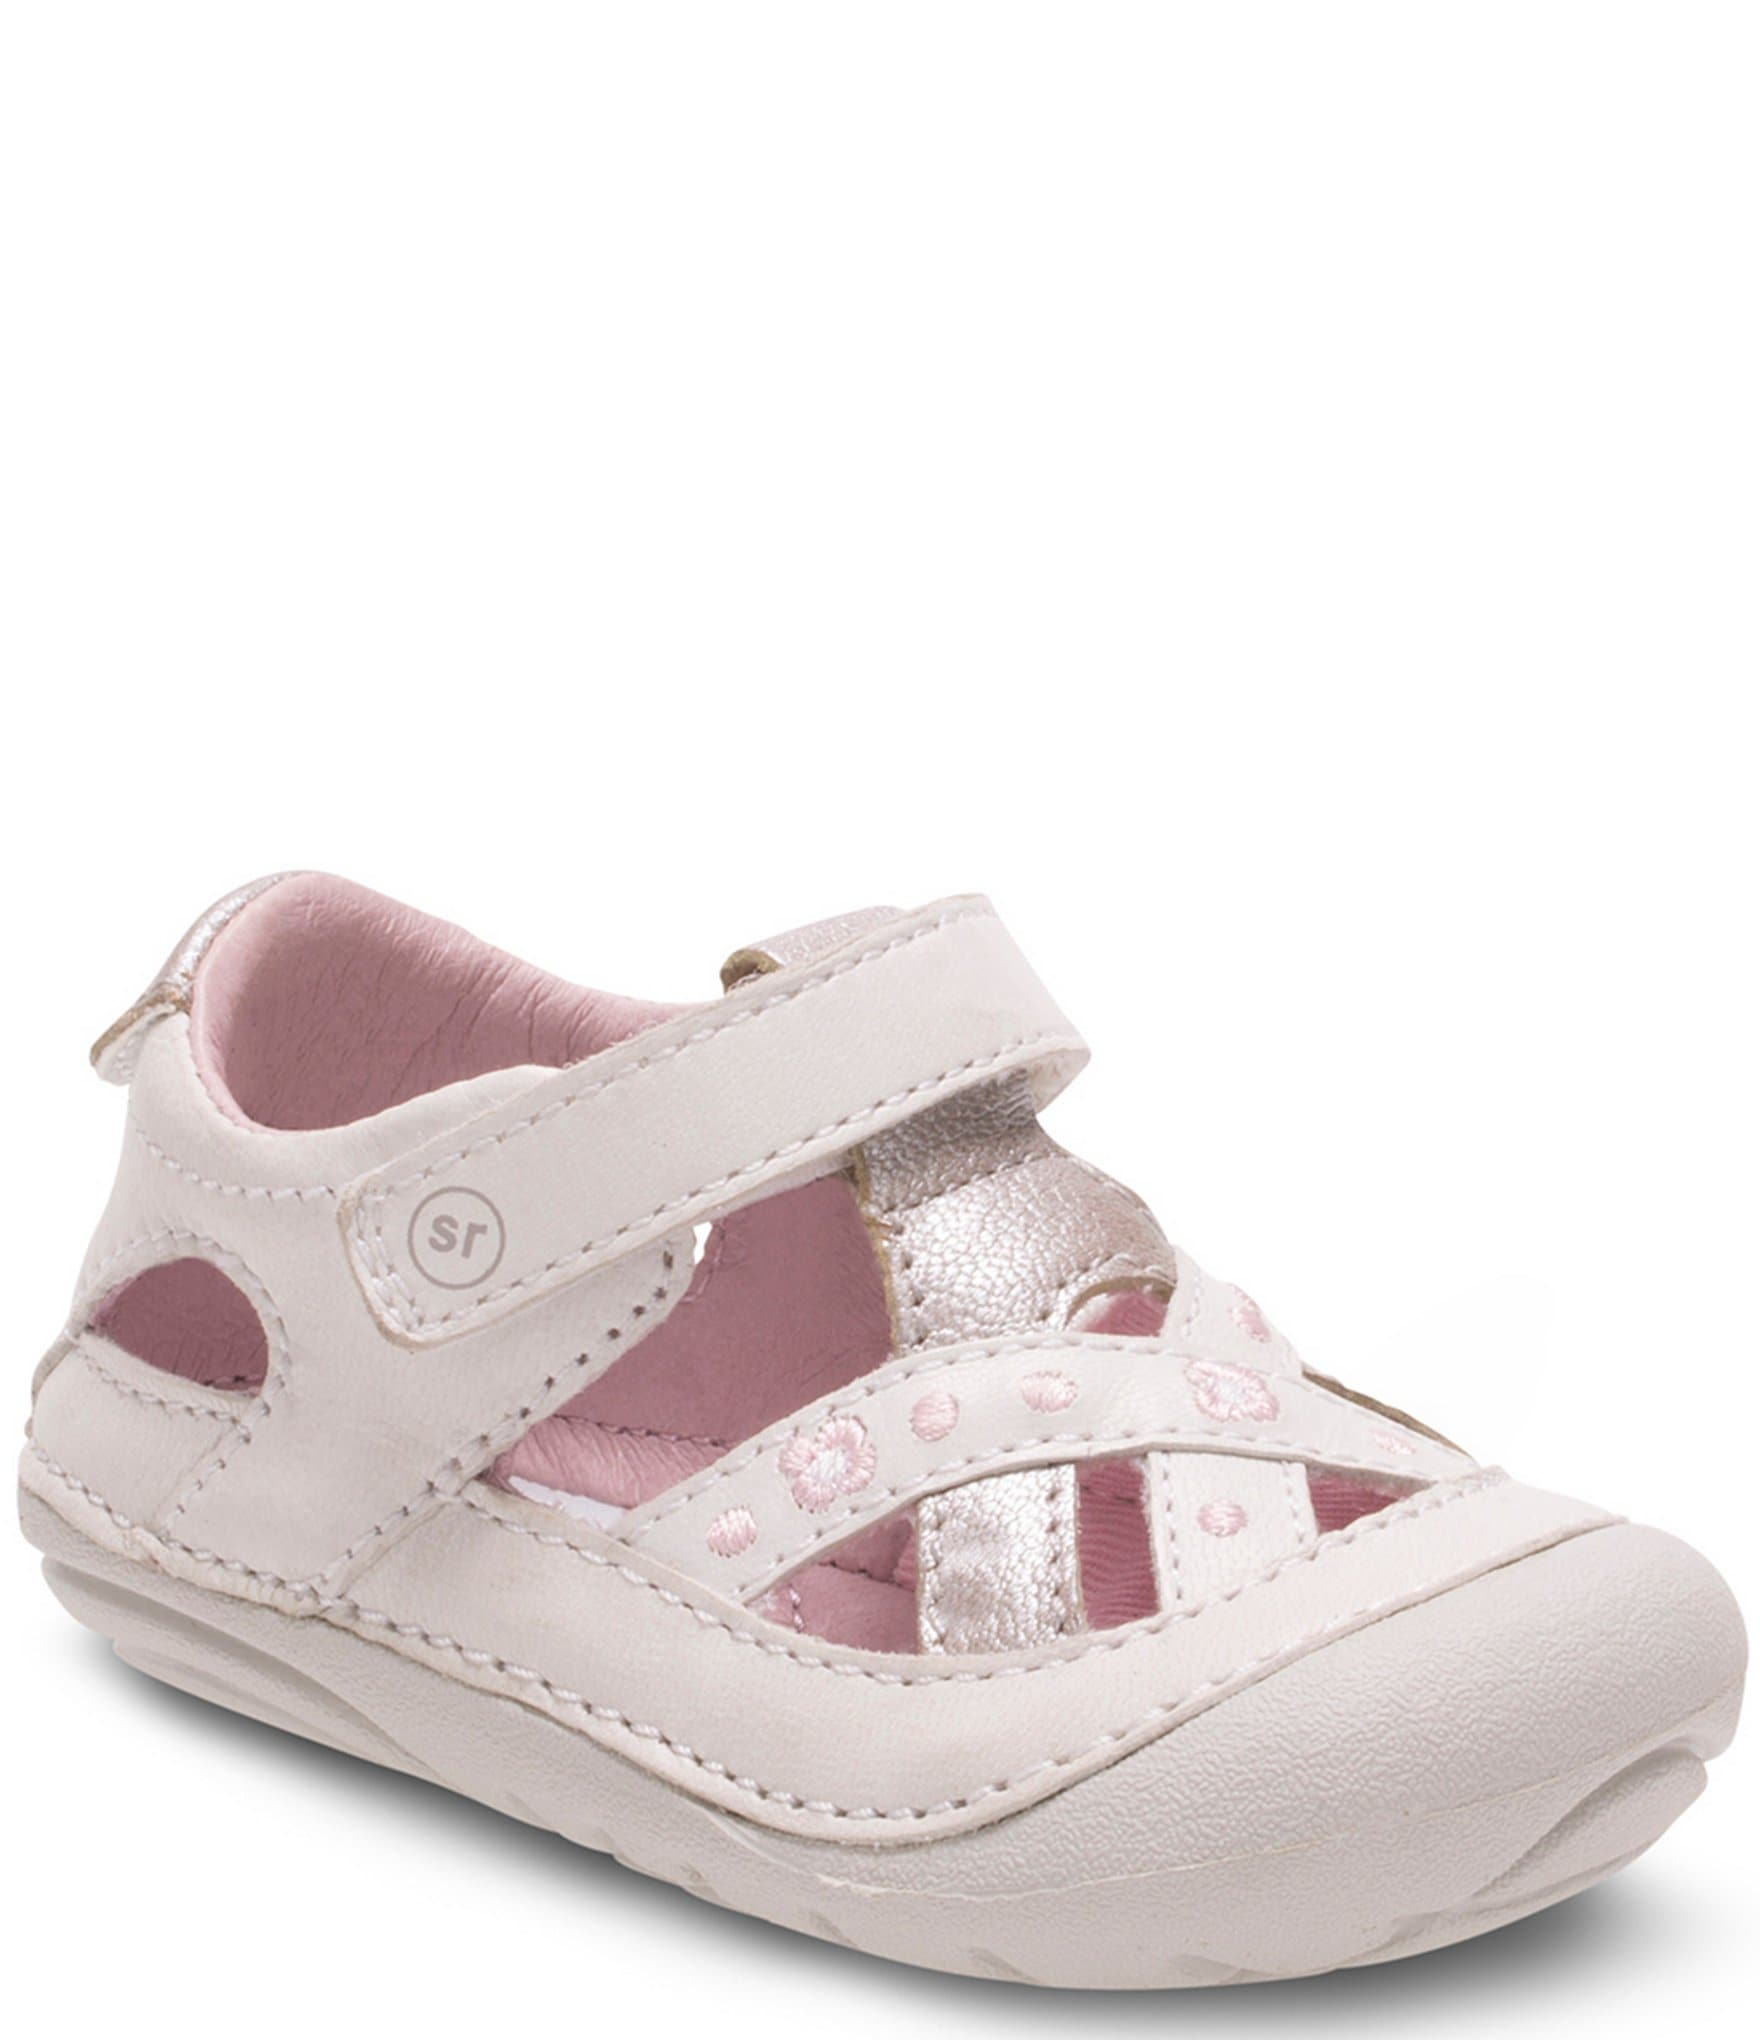 Stride Rite Girl White Shoes